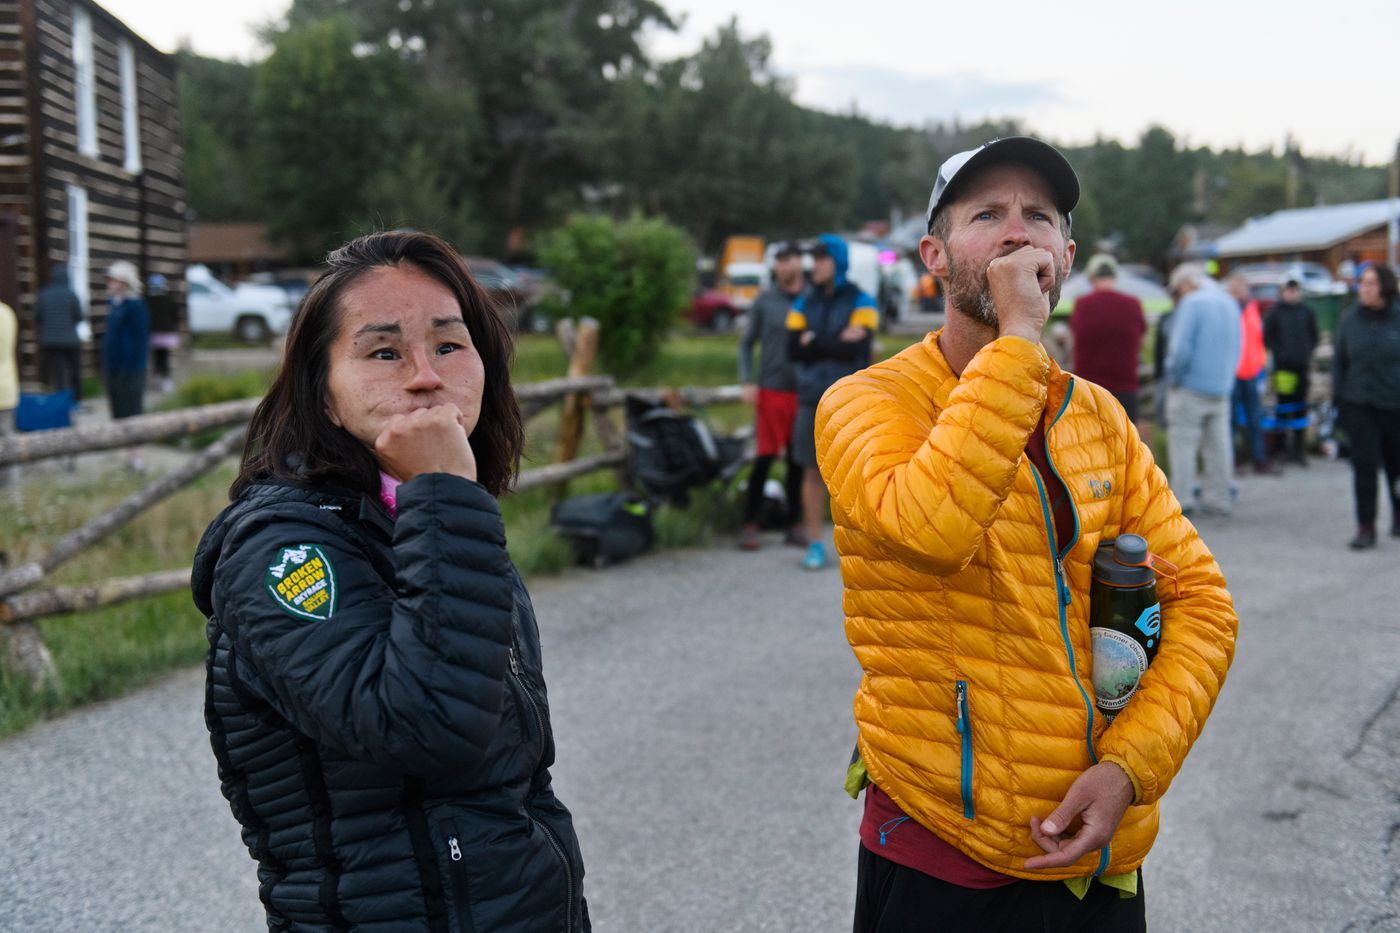 Carol Seppilu and her coach Sean Meissner look toward a mountain pass where Seppilu's Leadville Trail 100 Run came to an end on August 17, 2019. Seppilu failed to reach the mountain checkpoint before the race's cutoff time. (Marc Lester / ADN)